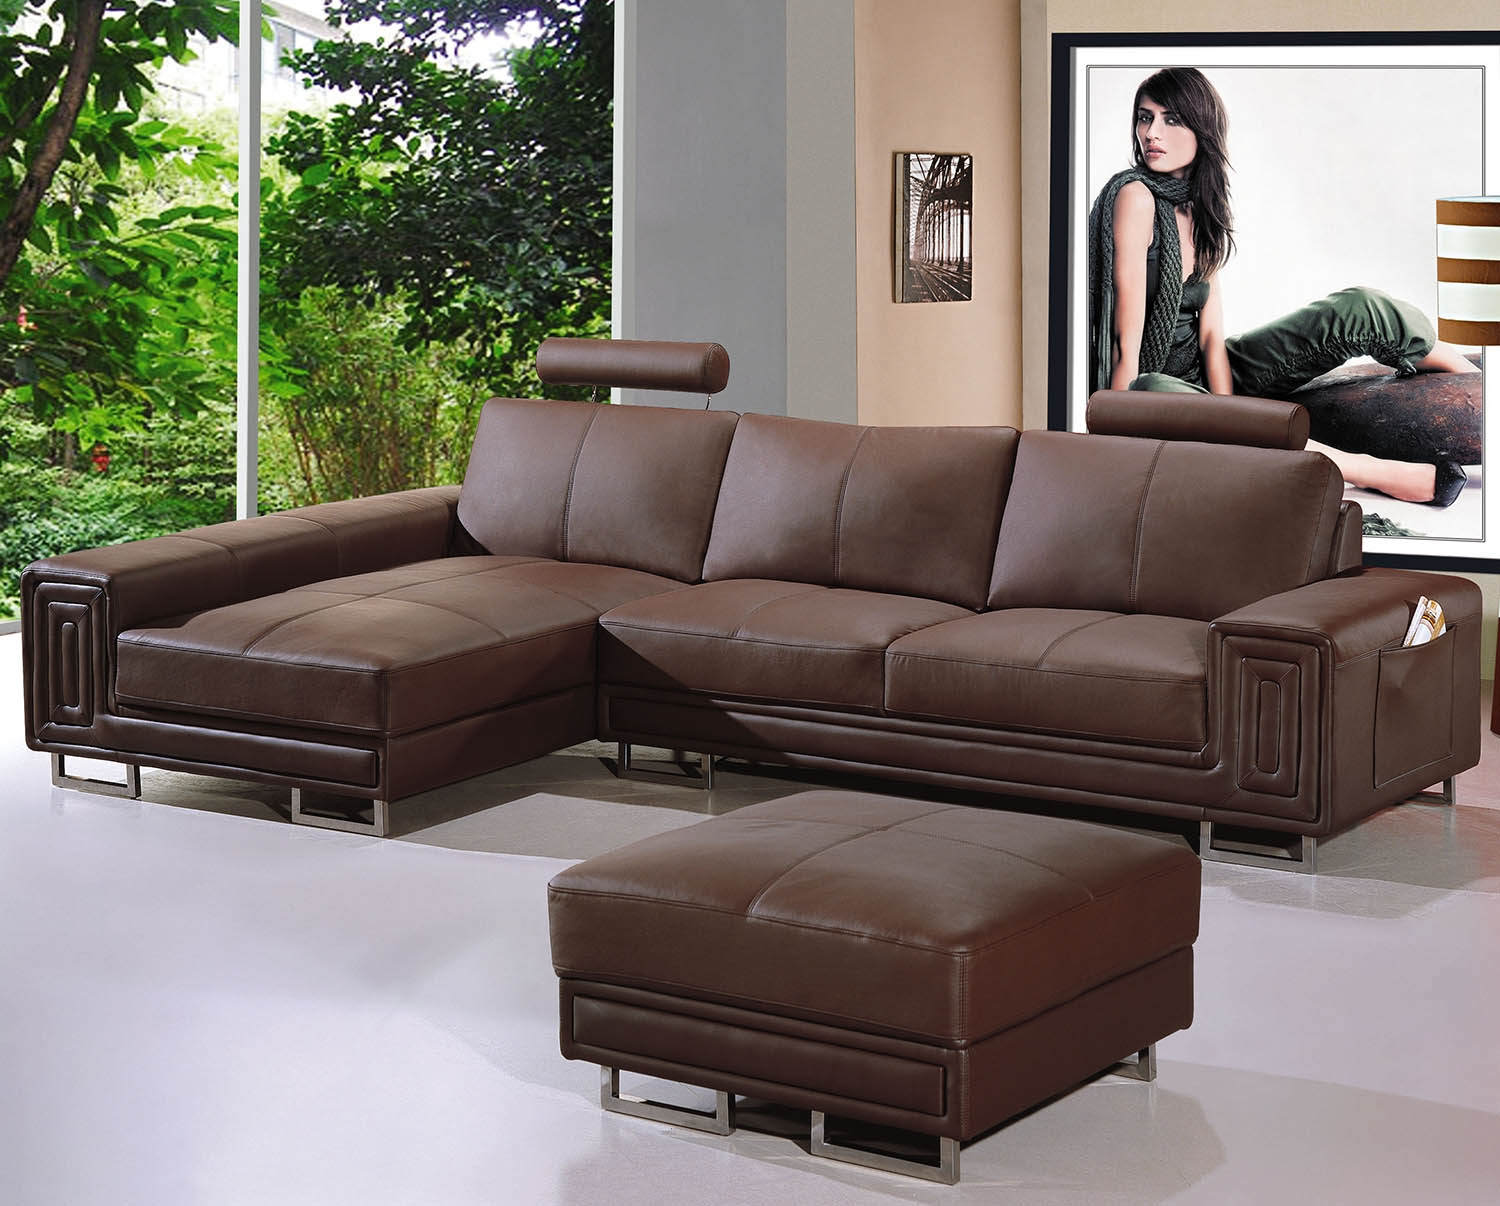 DECO IN PARIS Canape cuir d angle marron tetieres relax